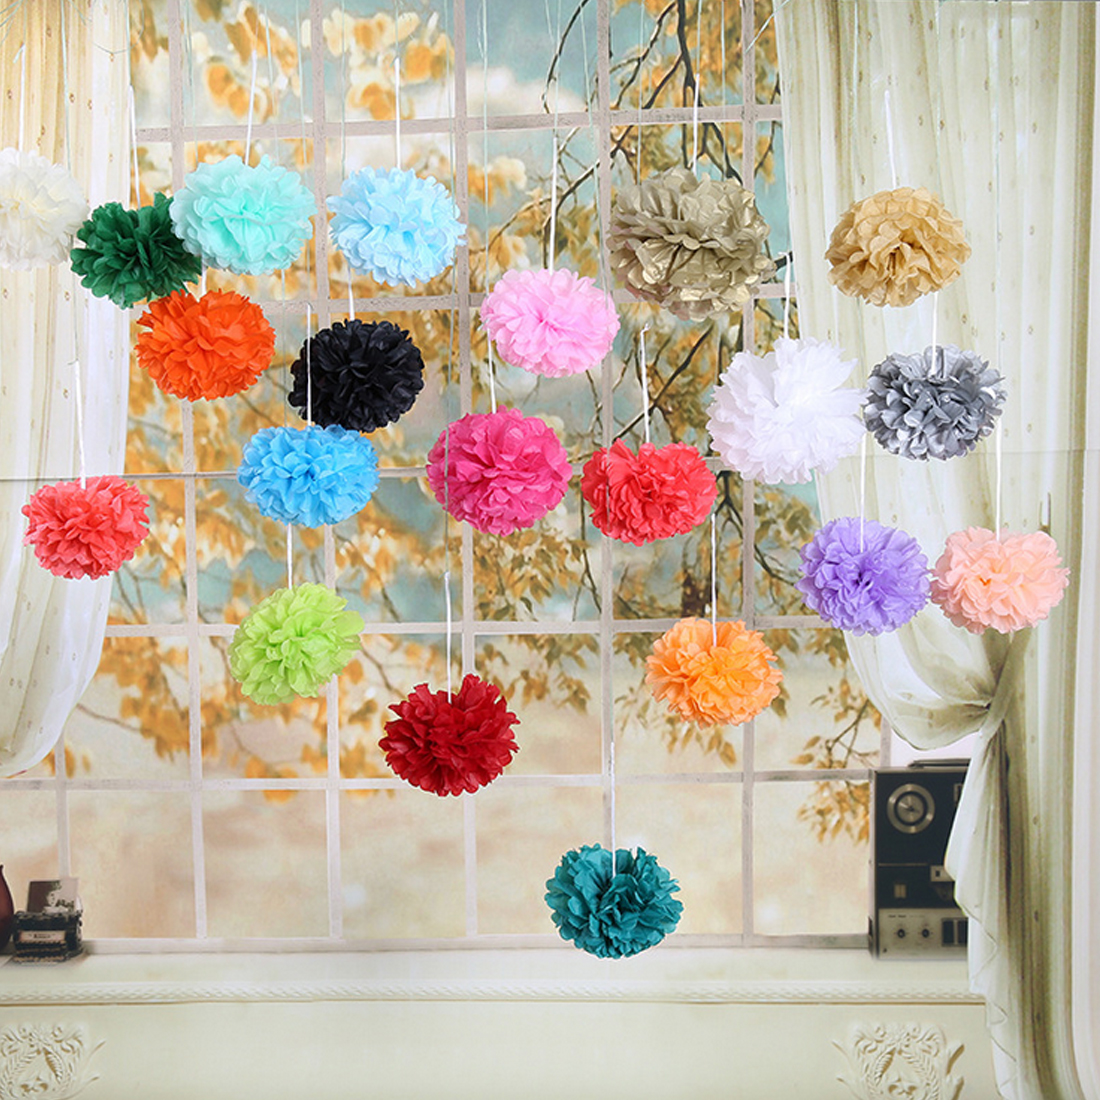 Us 1 04 5 Off 1pc Pompon Tissue Paper Pom Poms Flower Balls For Wedding Room Decoration Party Supplies Diy Craft Paper Flower In Artificial Dried